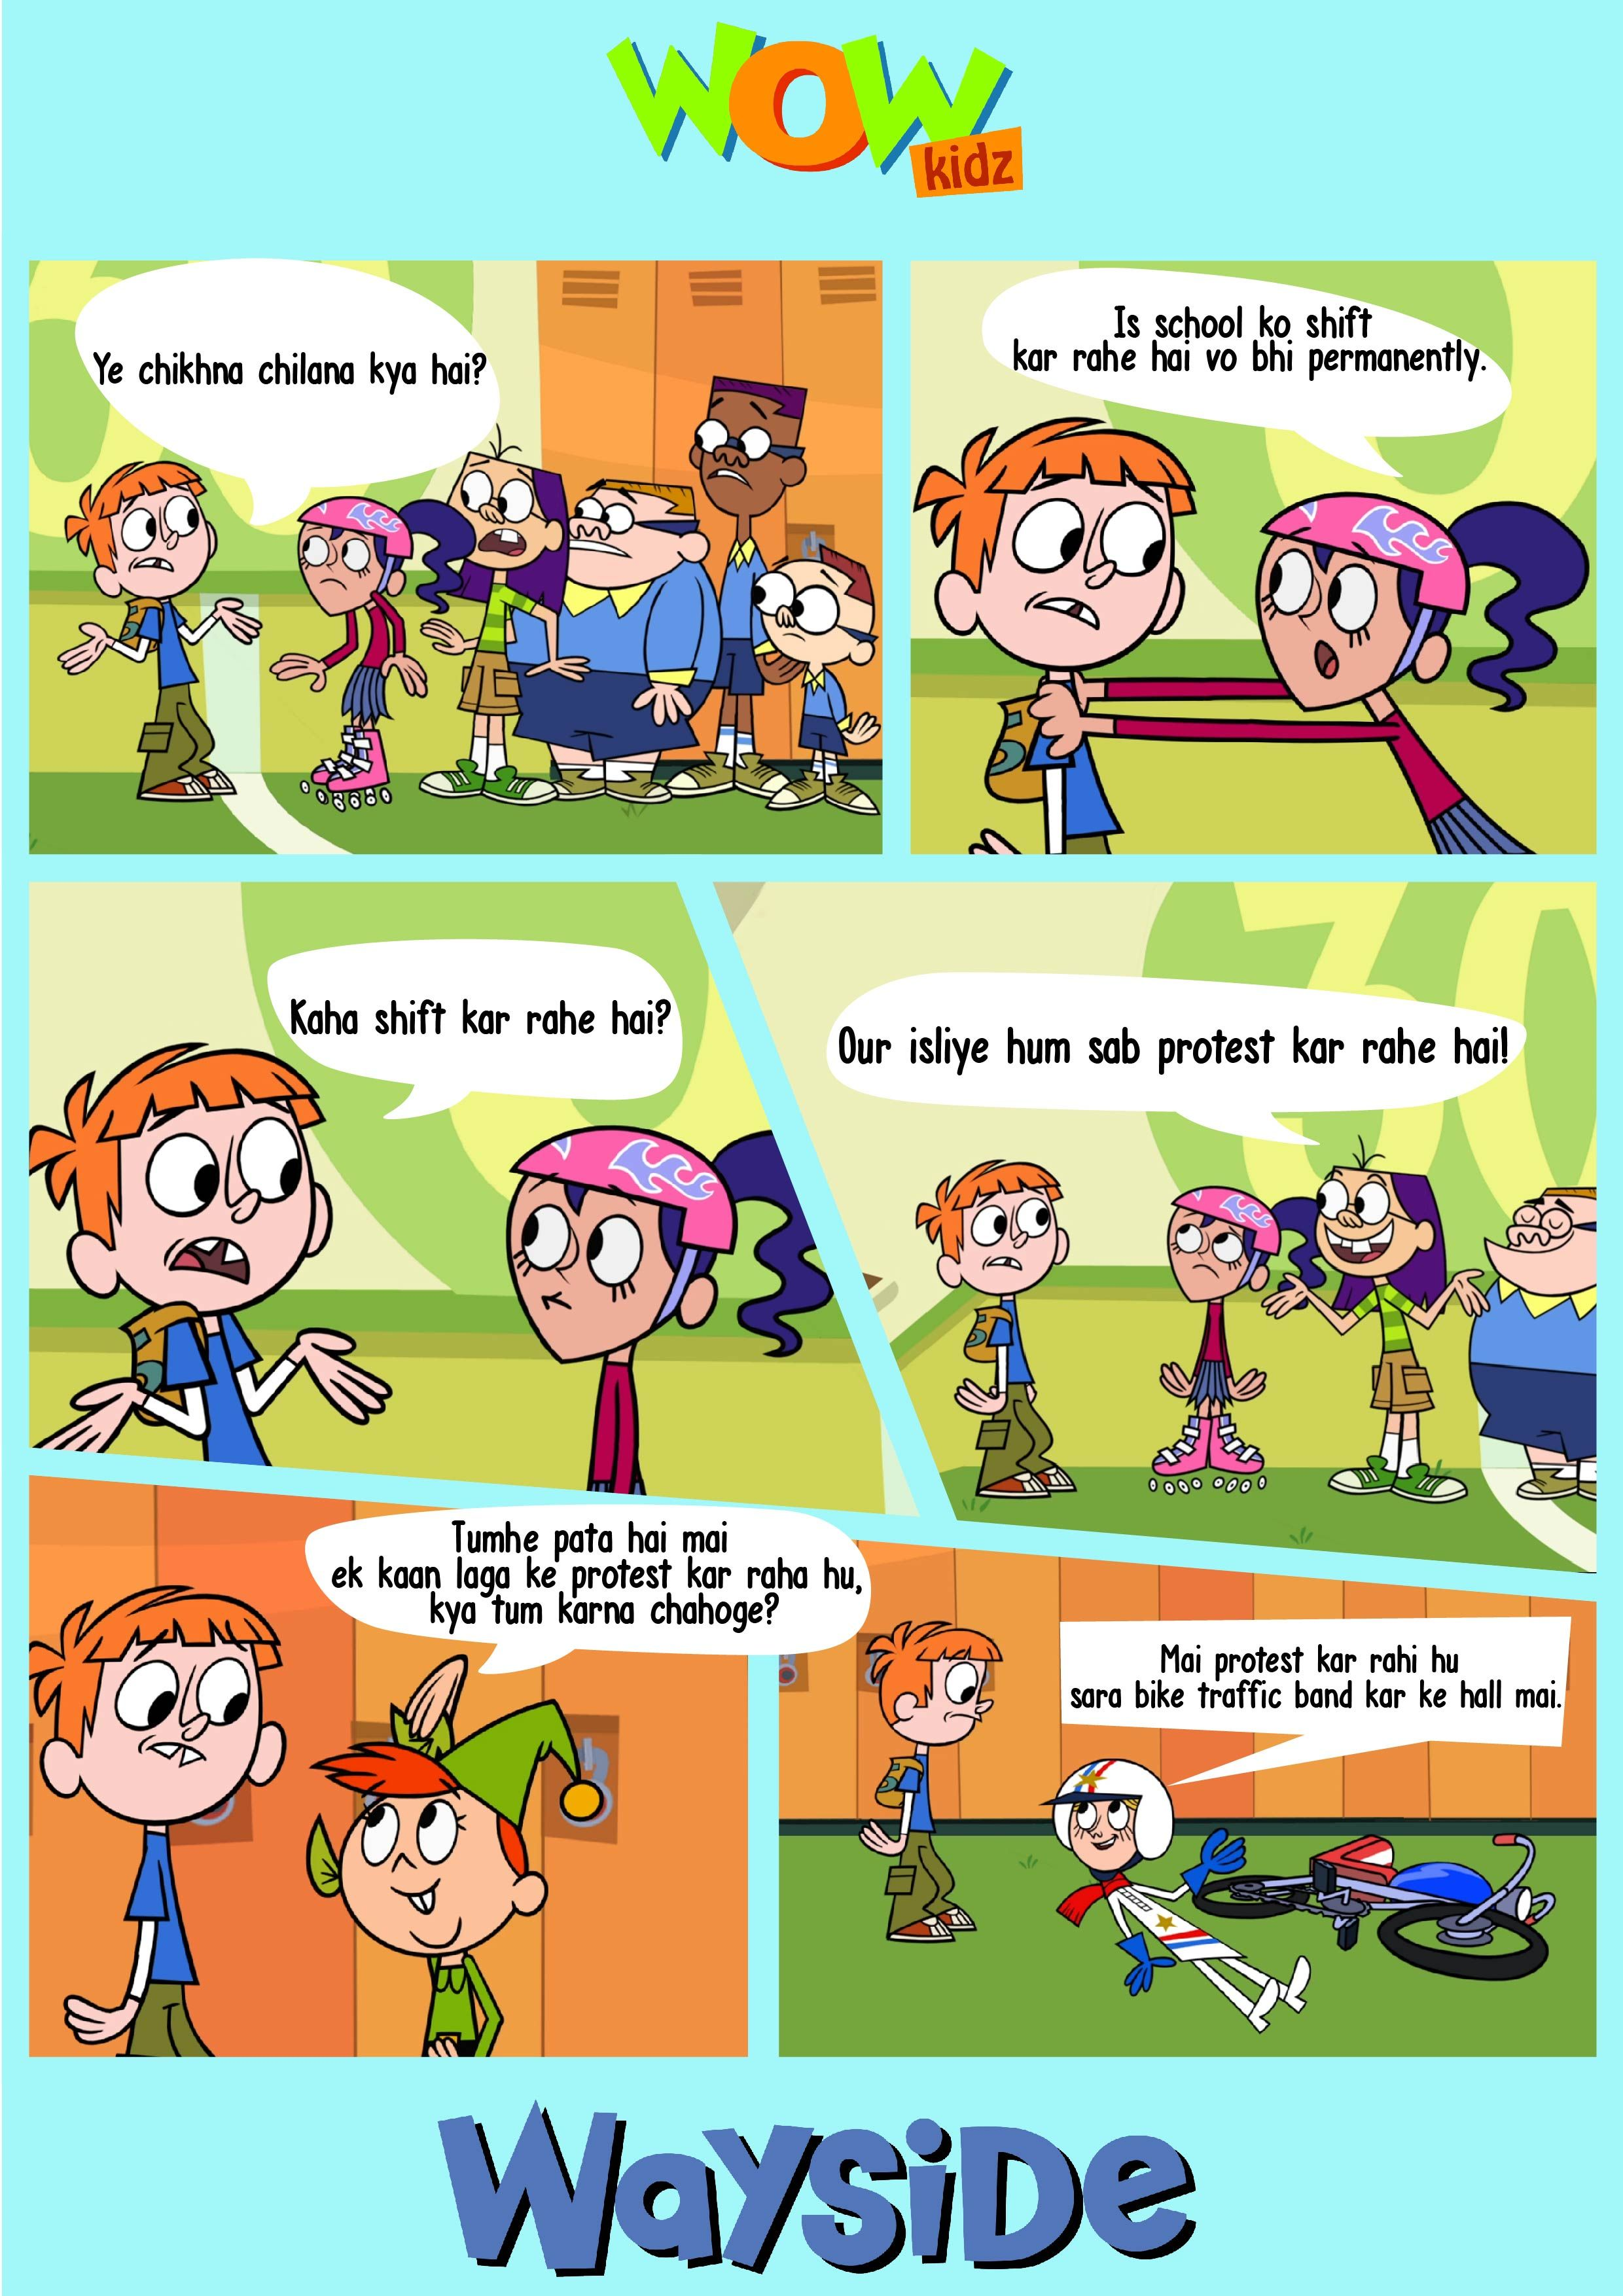 What Is The Protest In Wayside School About Wowkidz Waysideschool Cartoon Kids Fun Wayside School Cartoon Fun